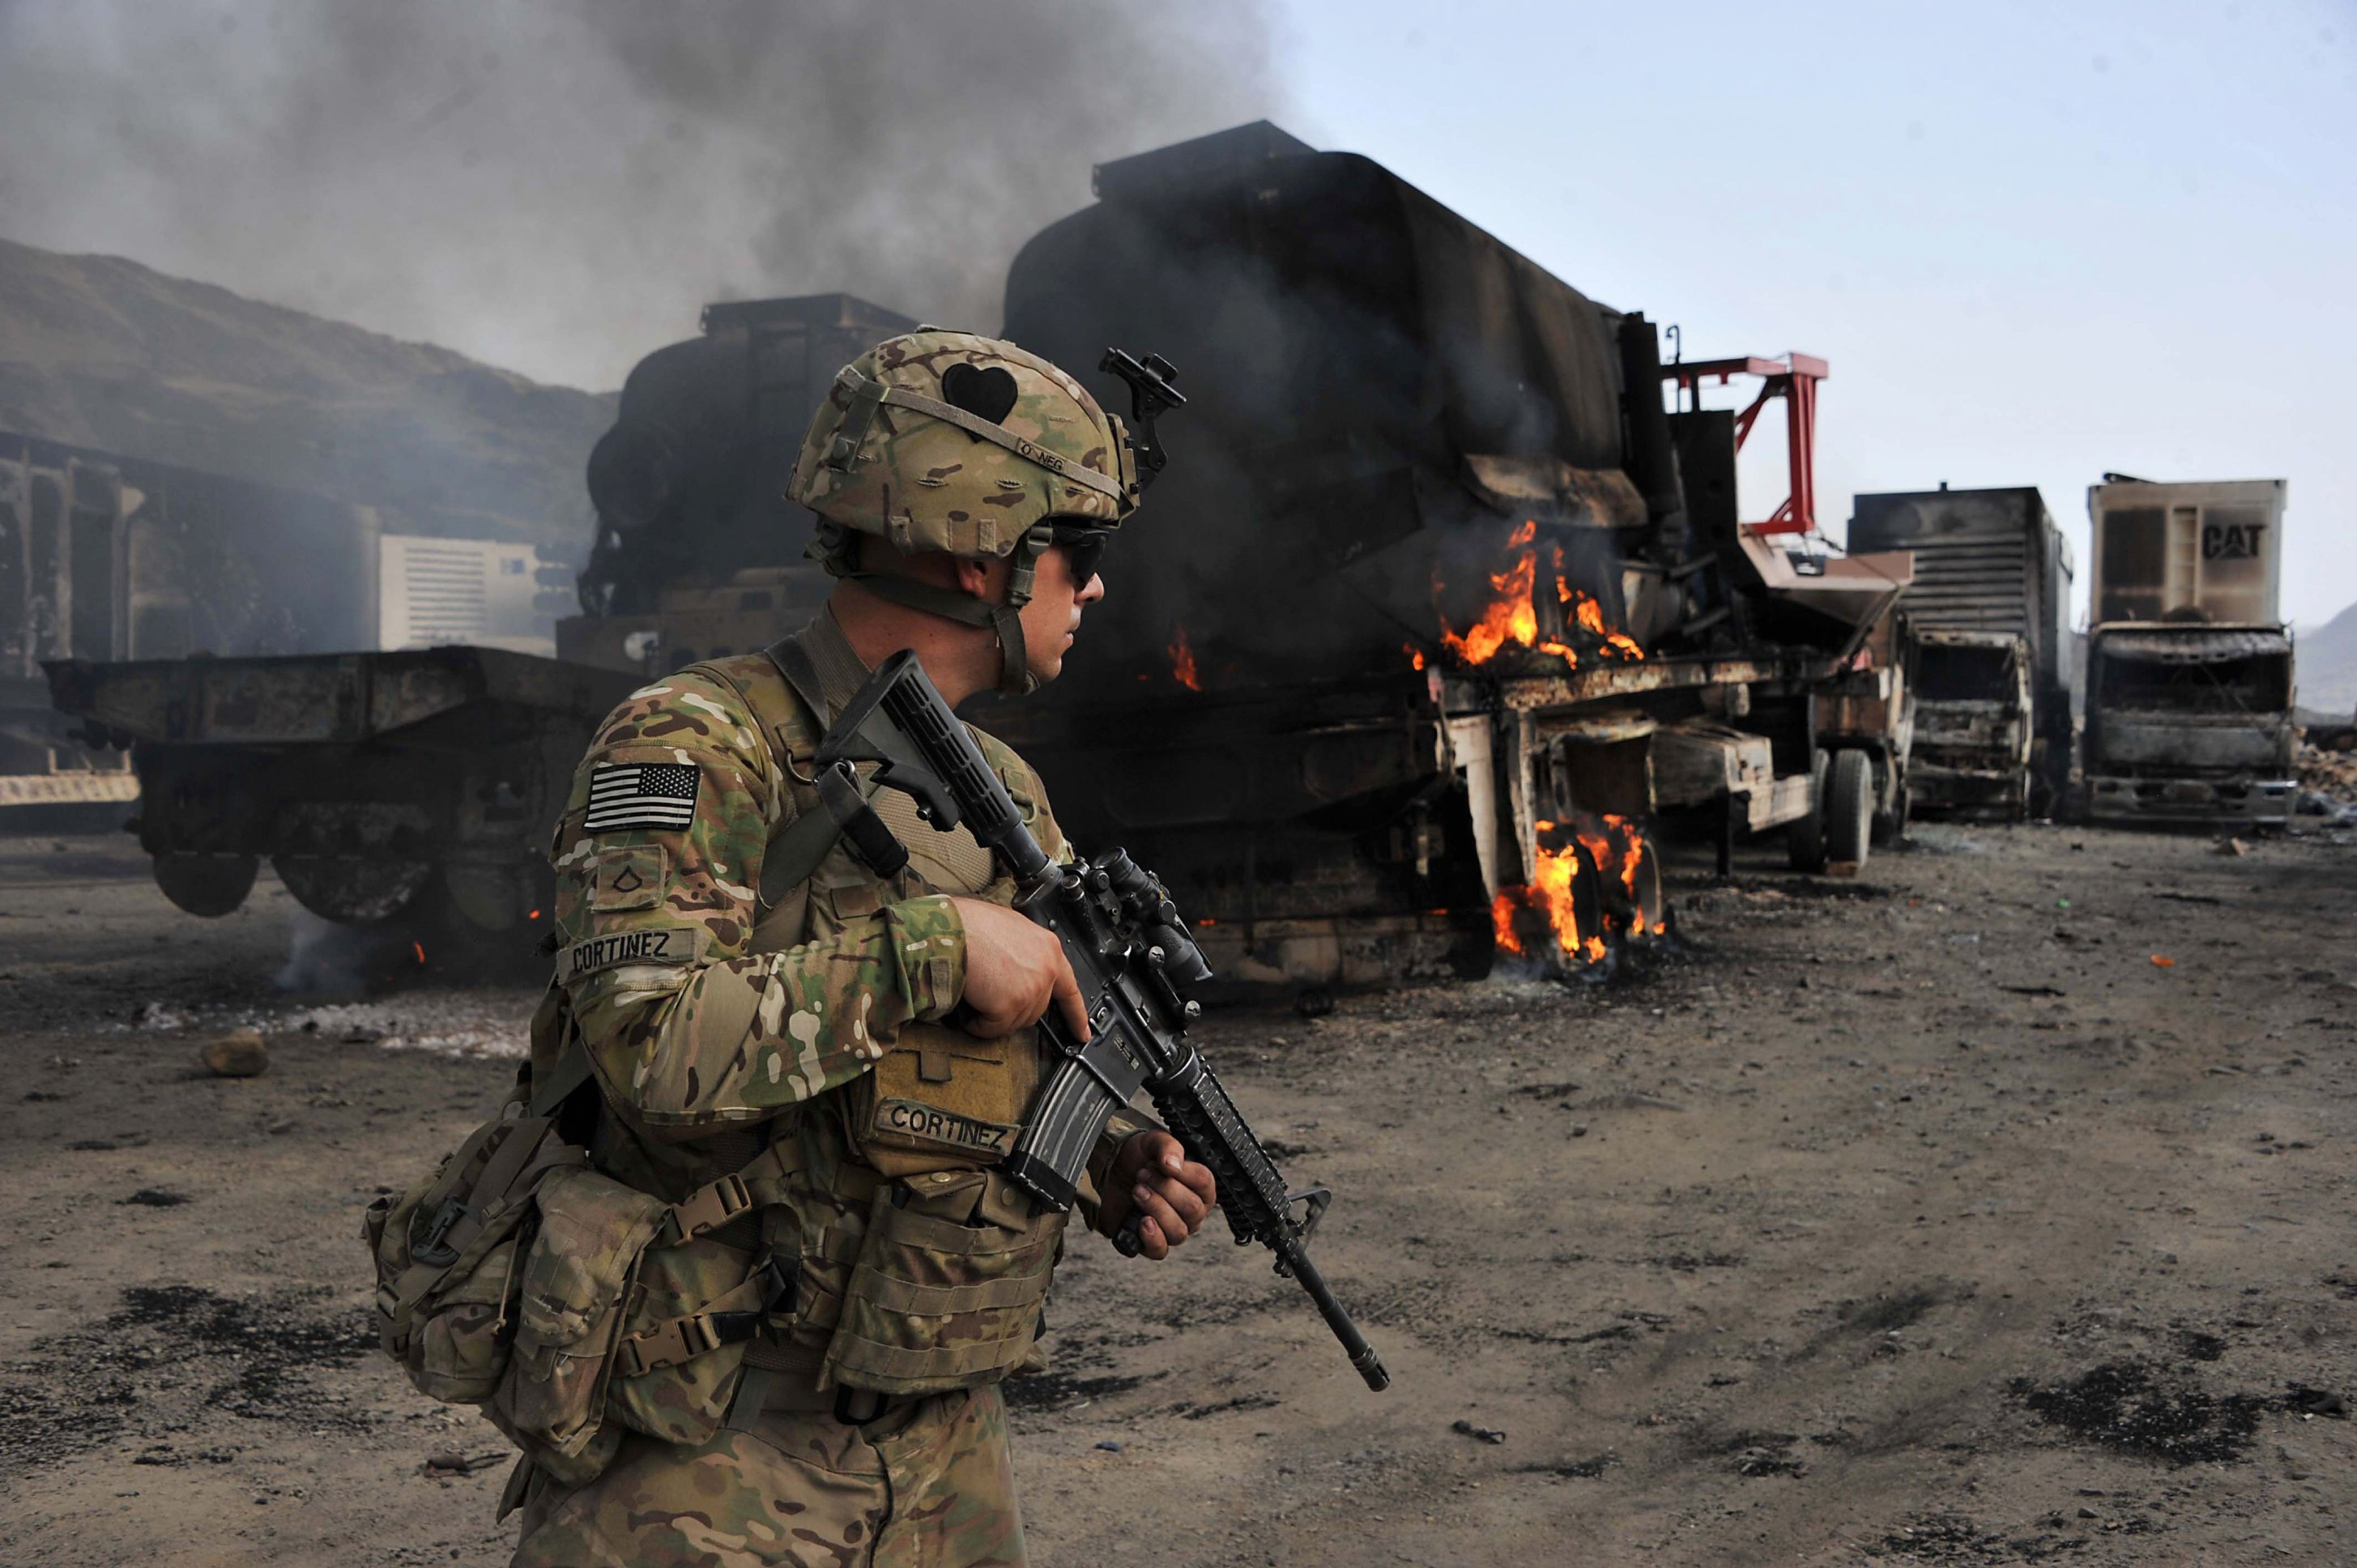 A US soldier investigates the scene of a suicide attack at the Afghan-Pakistan border crossing in Torkham, Nangarhar province, June 19, 2014. (AFP)